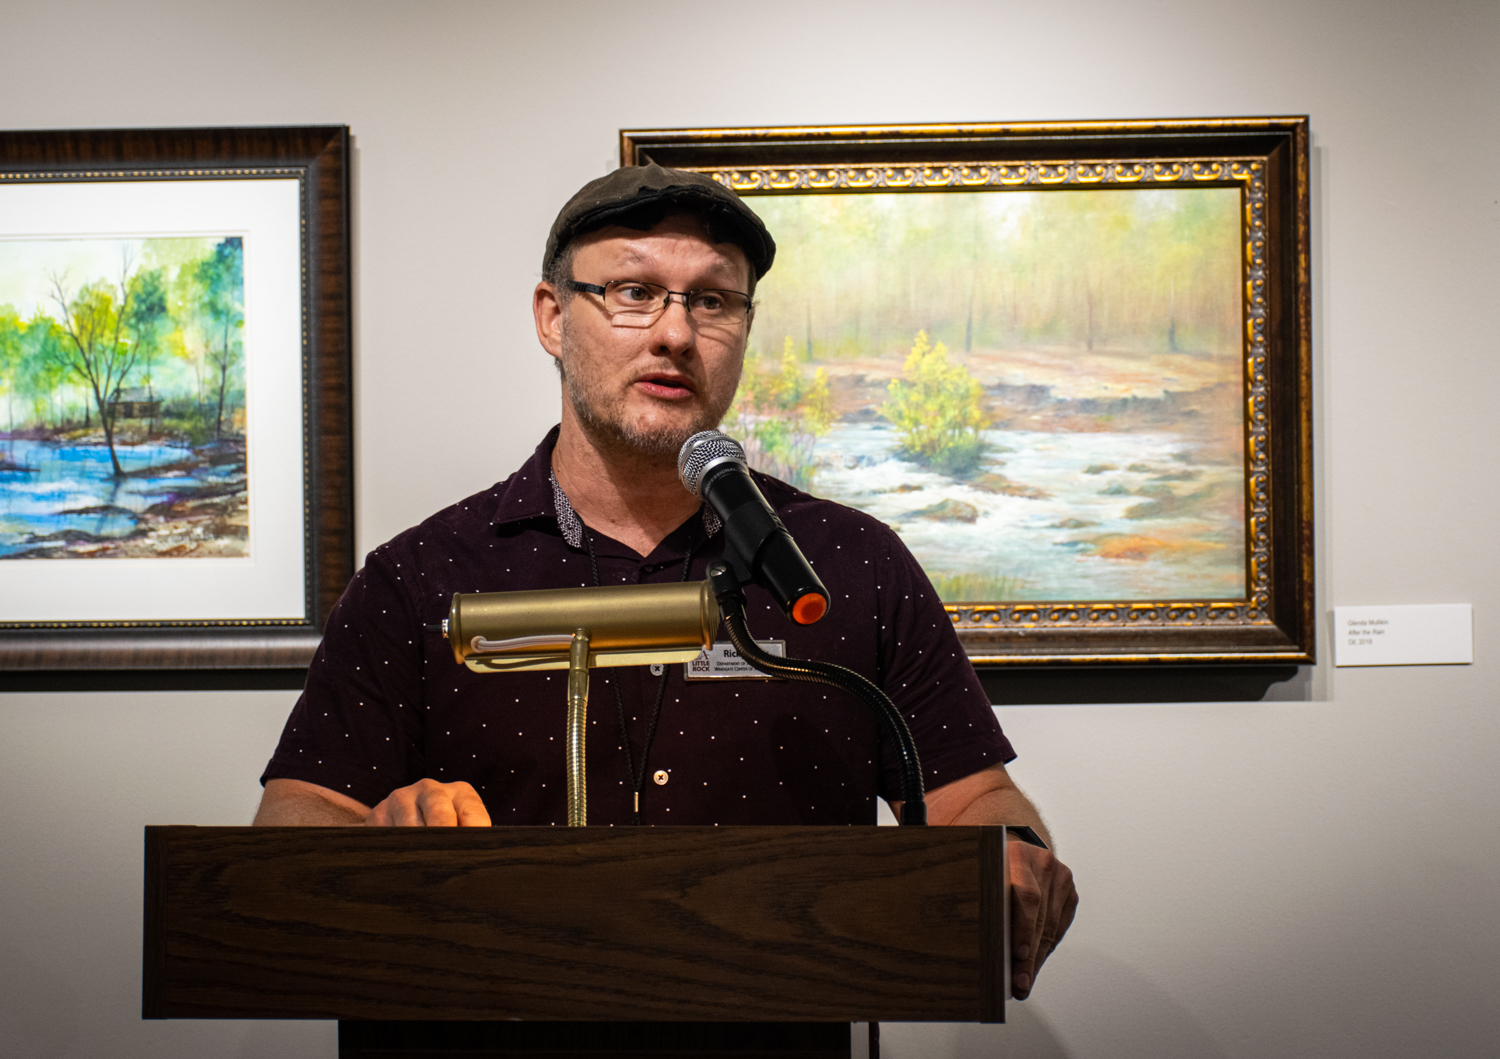 Juror Ricky Sikes, who is an artist-in-residence at University of Arkansas-Little Rock, speaks during the opening reception.